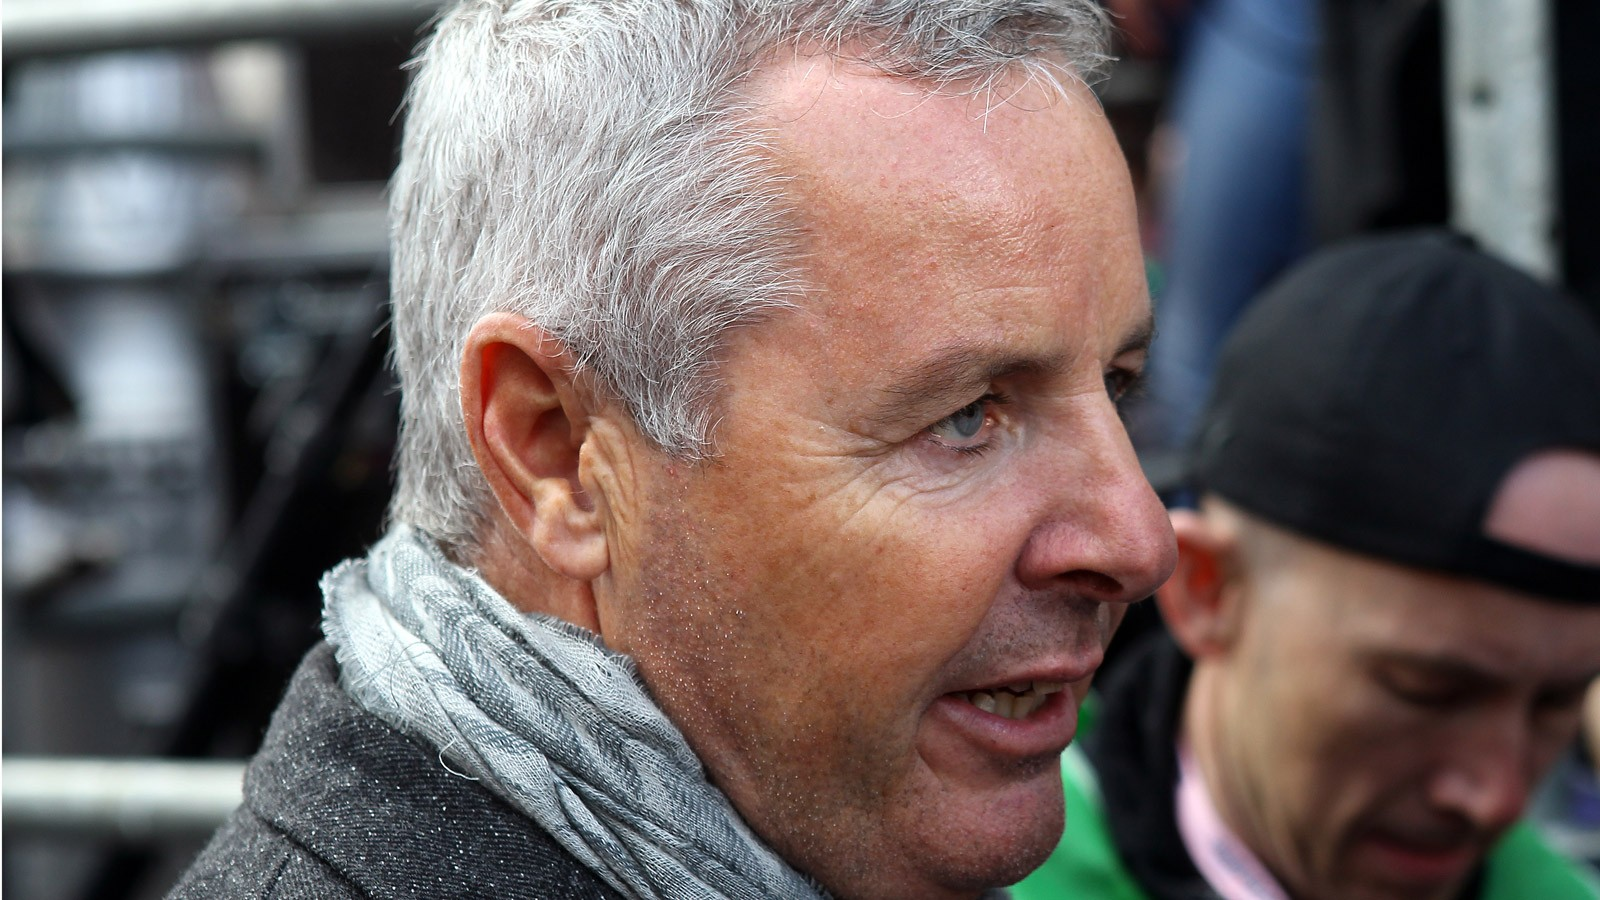 Stephen Roche is competing in the Prudential RideLondon event